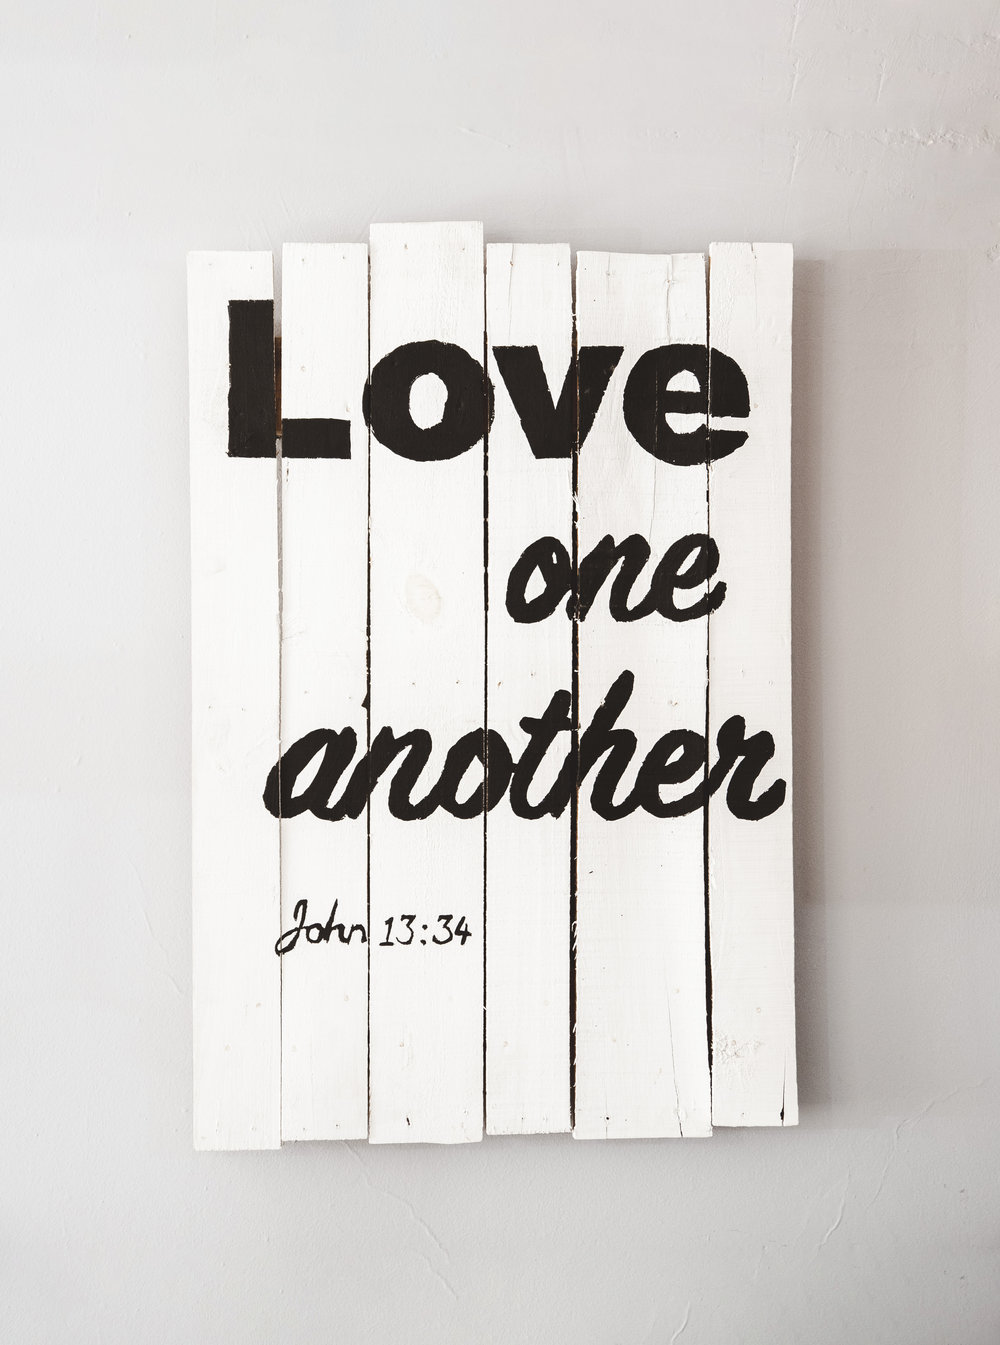 """Love one another – John 13:34"" Phot0 courtesy of www.Christianpics.co"